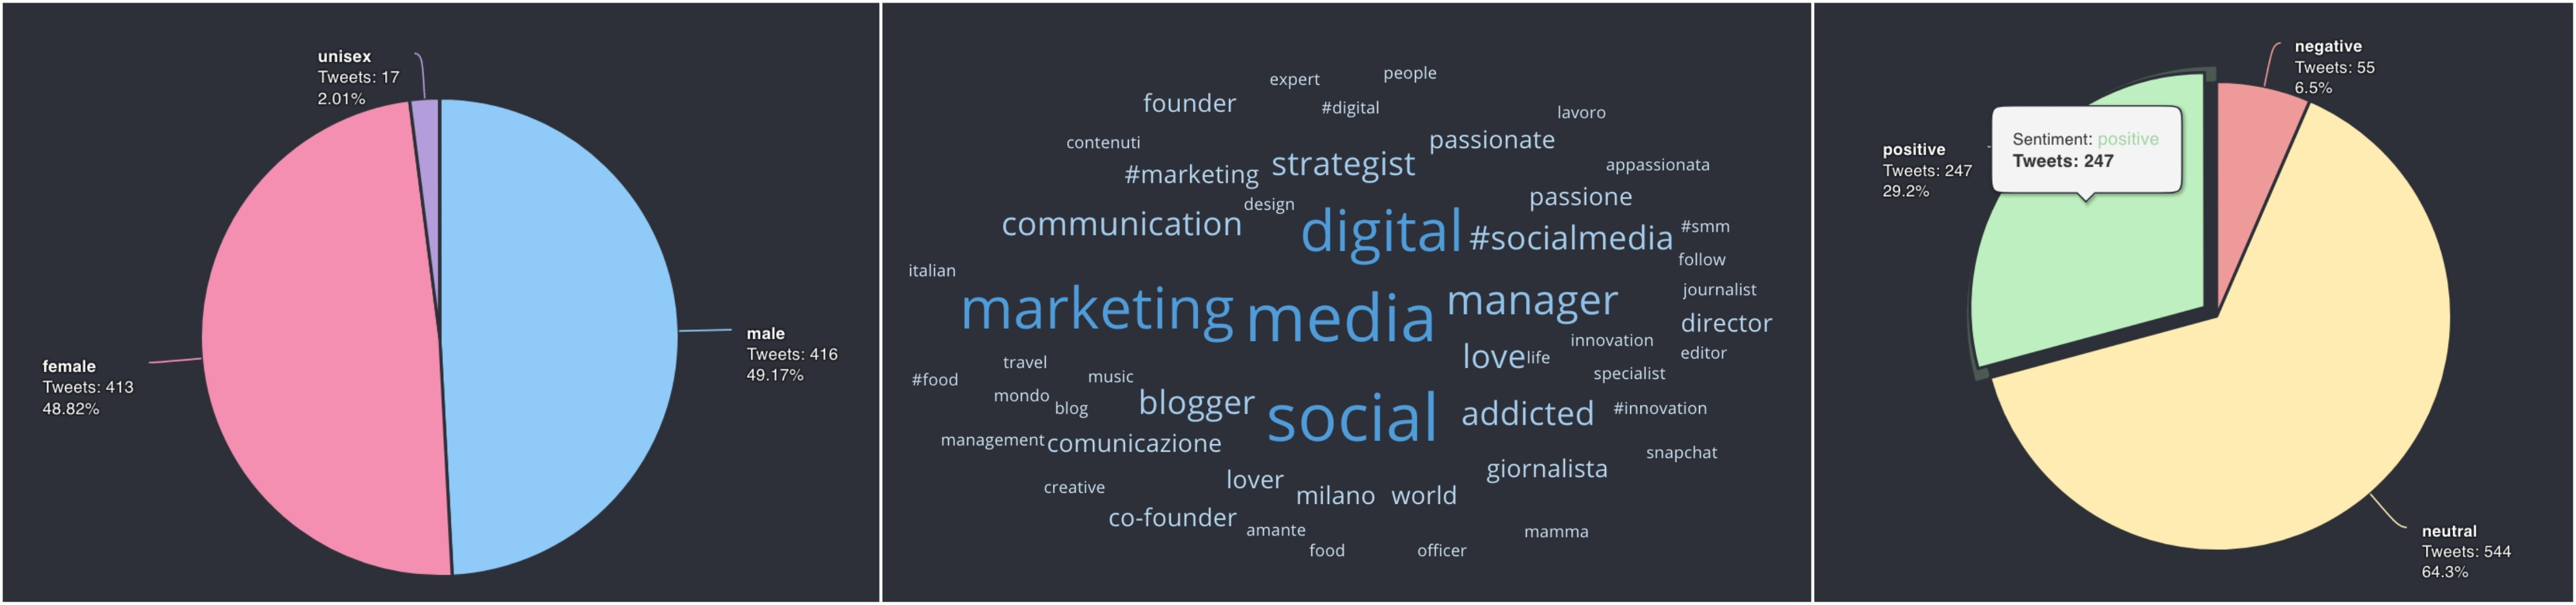 Immagine che mostra i widget Gender Pie, Word Cloud e Sentiment Analysis su Kpi6